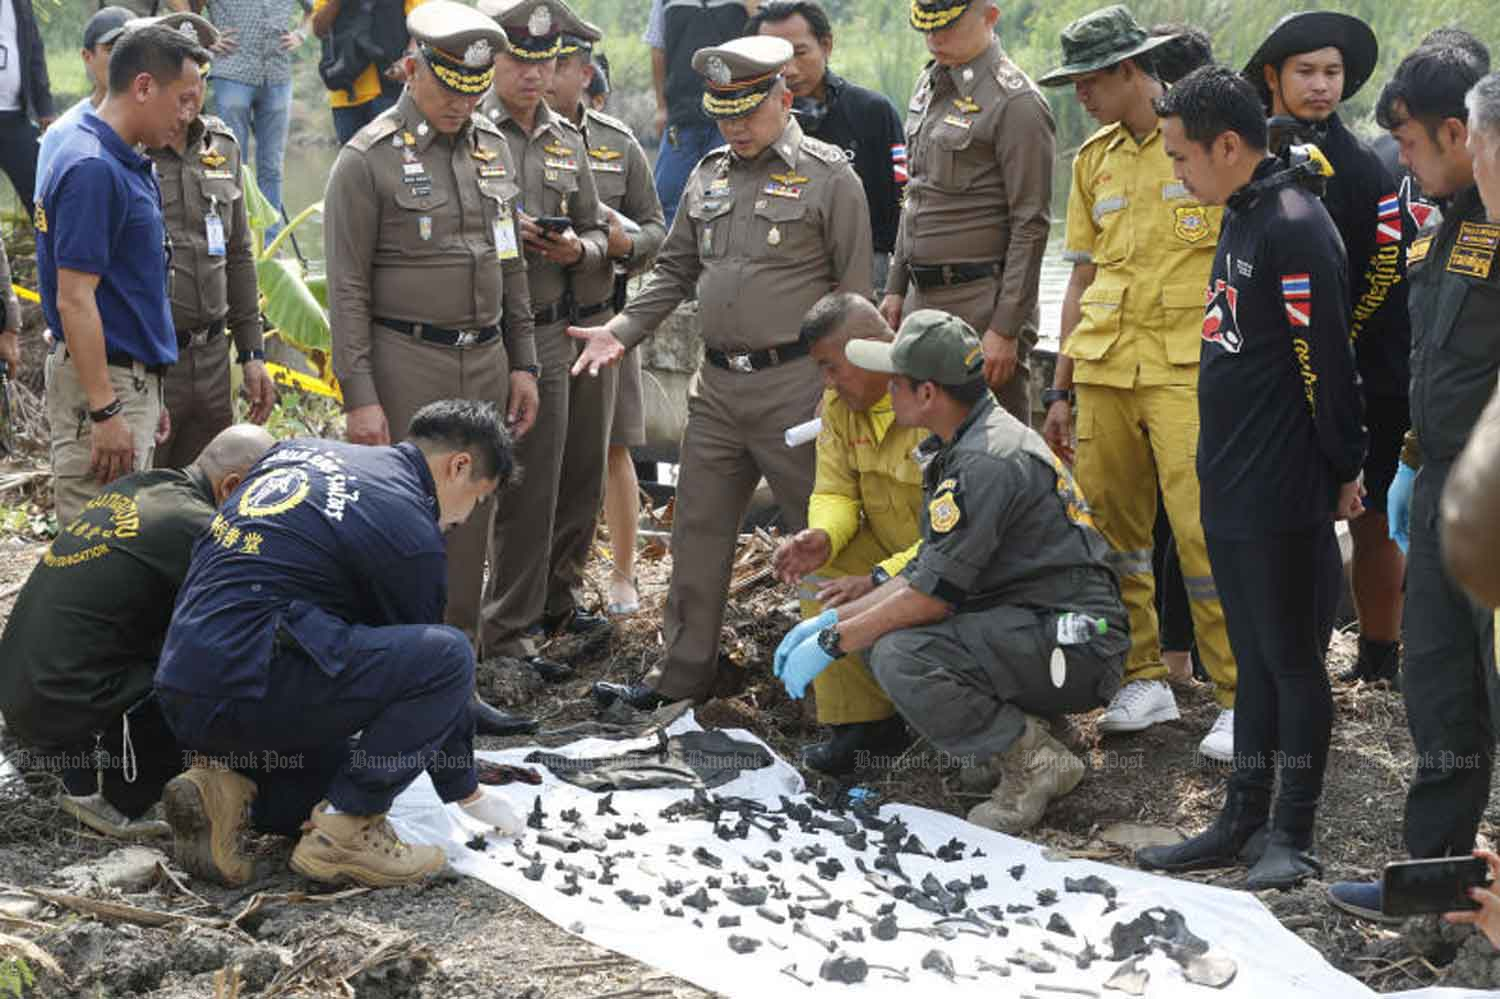 Police examine fragments of human bones collected from a pond in the back yard of the house of Apichai Ongwisit in Bang Khae area of Bangkok in January this year. (Photo: Pornprom Satrabhaya)